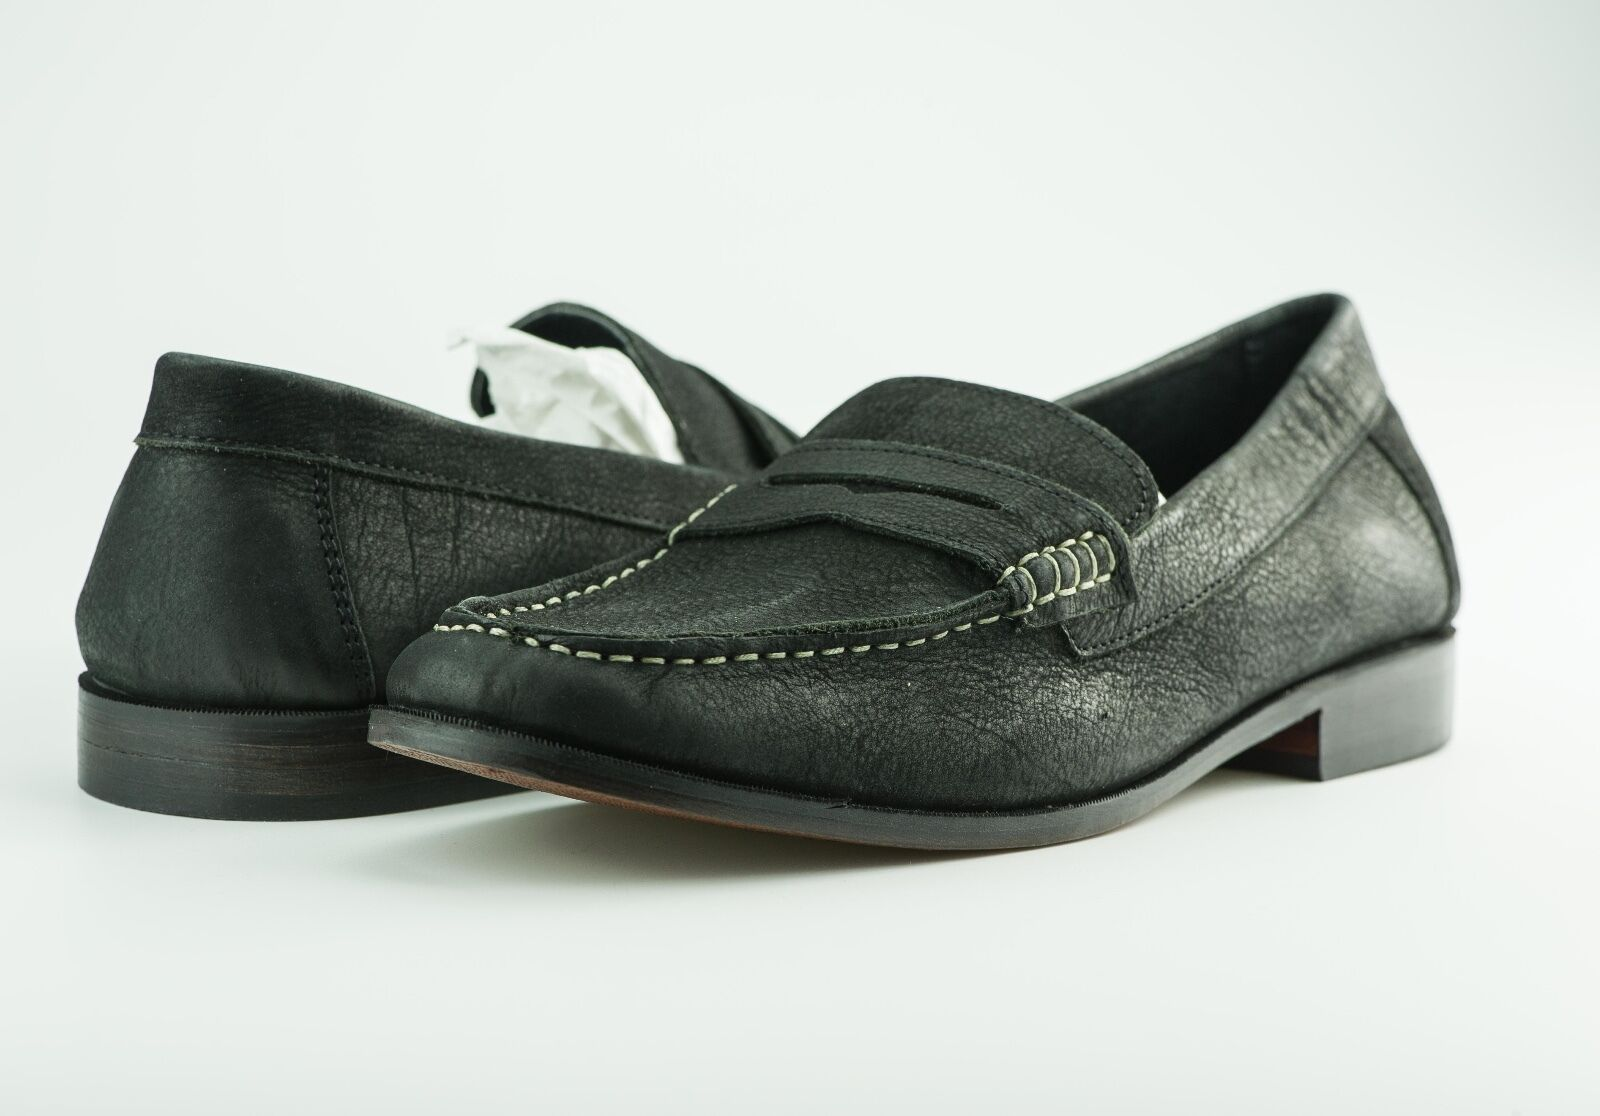 HARRYKSON Gr. Leder Mokassins / BusinessSchuhe Gr. HARRYKSON 44 Schwarz Slipper d4f61b